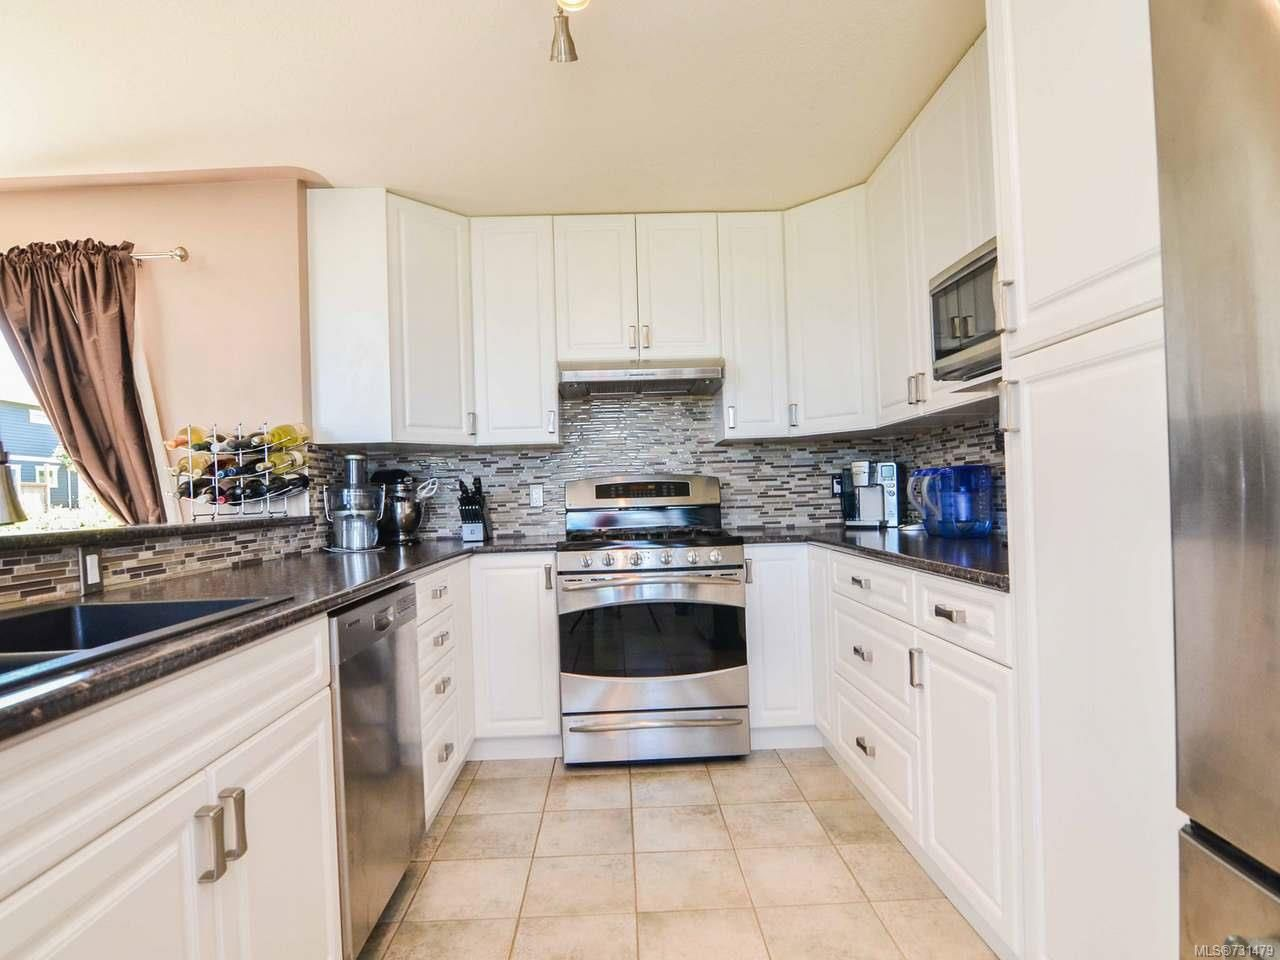 Photo 13: Photos: 753 Bowen Dr in CAMPBELL RIVER: CR Willow Point House for sale (Campbell River)  : MLS®# 731479